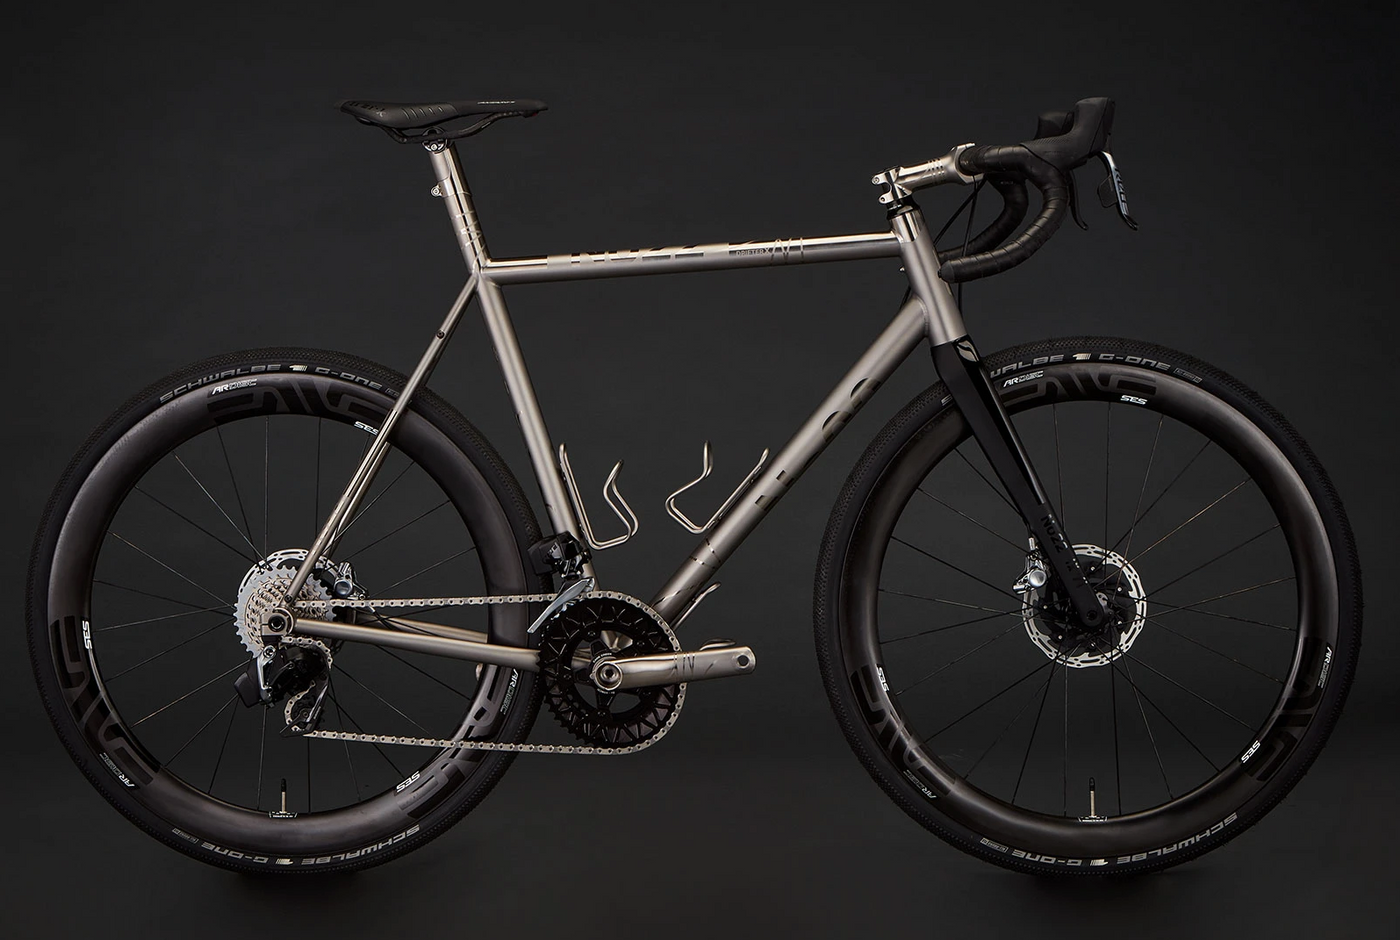 Get a Deal on US Made Titanium: All No.22 Bicycle Models on Sale.